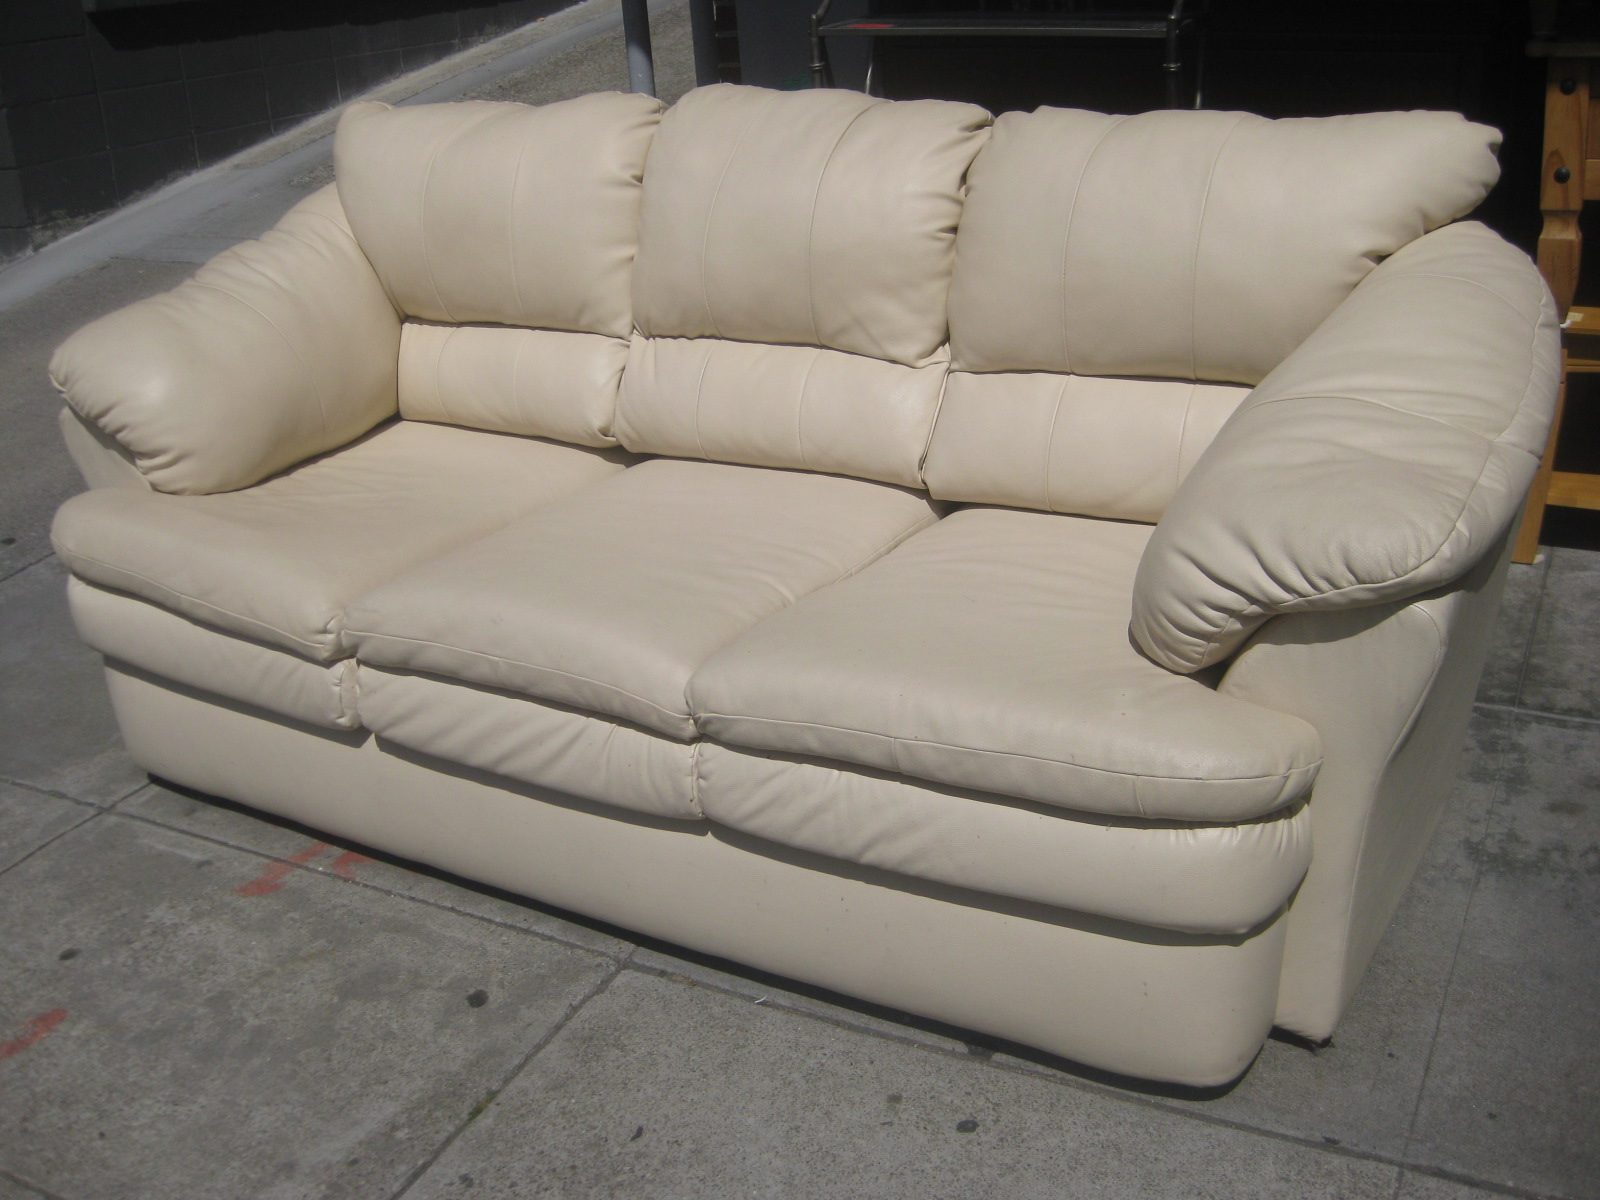 UHURU FURNITURE COLLECTIBLES SOLD White Leather Sofa - Sofa center oakland